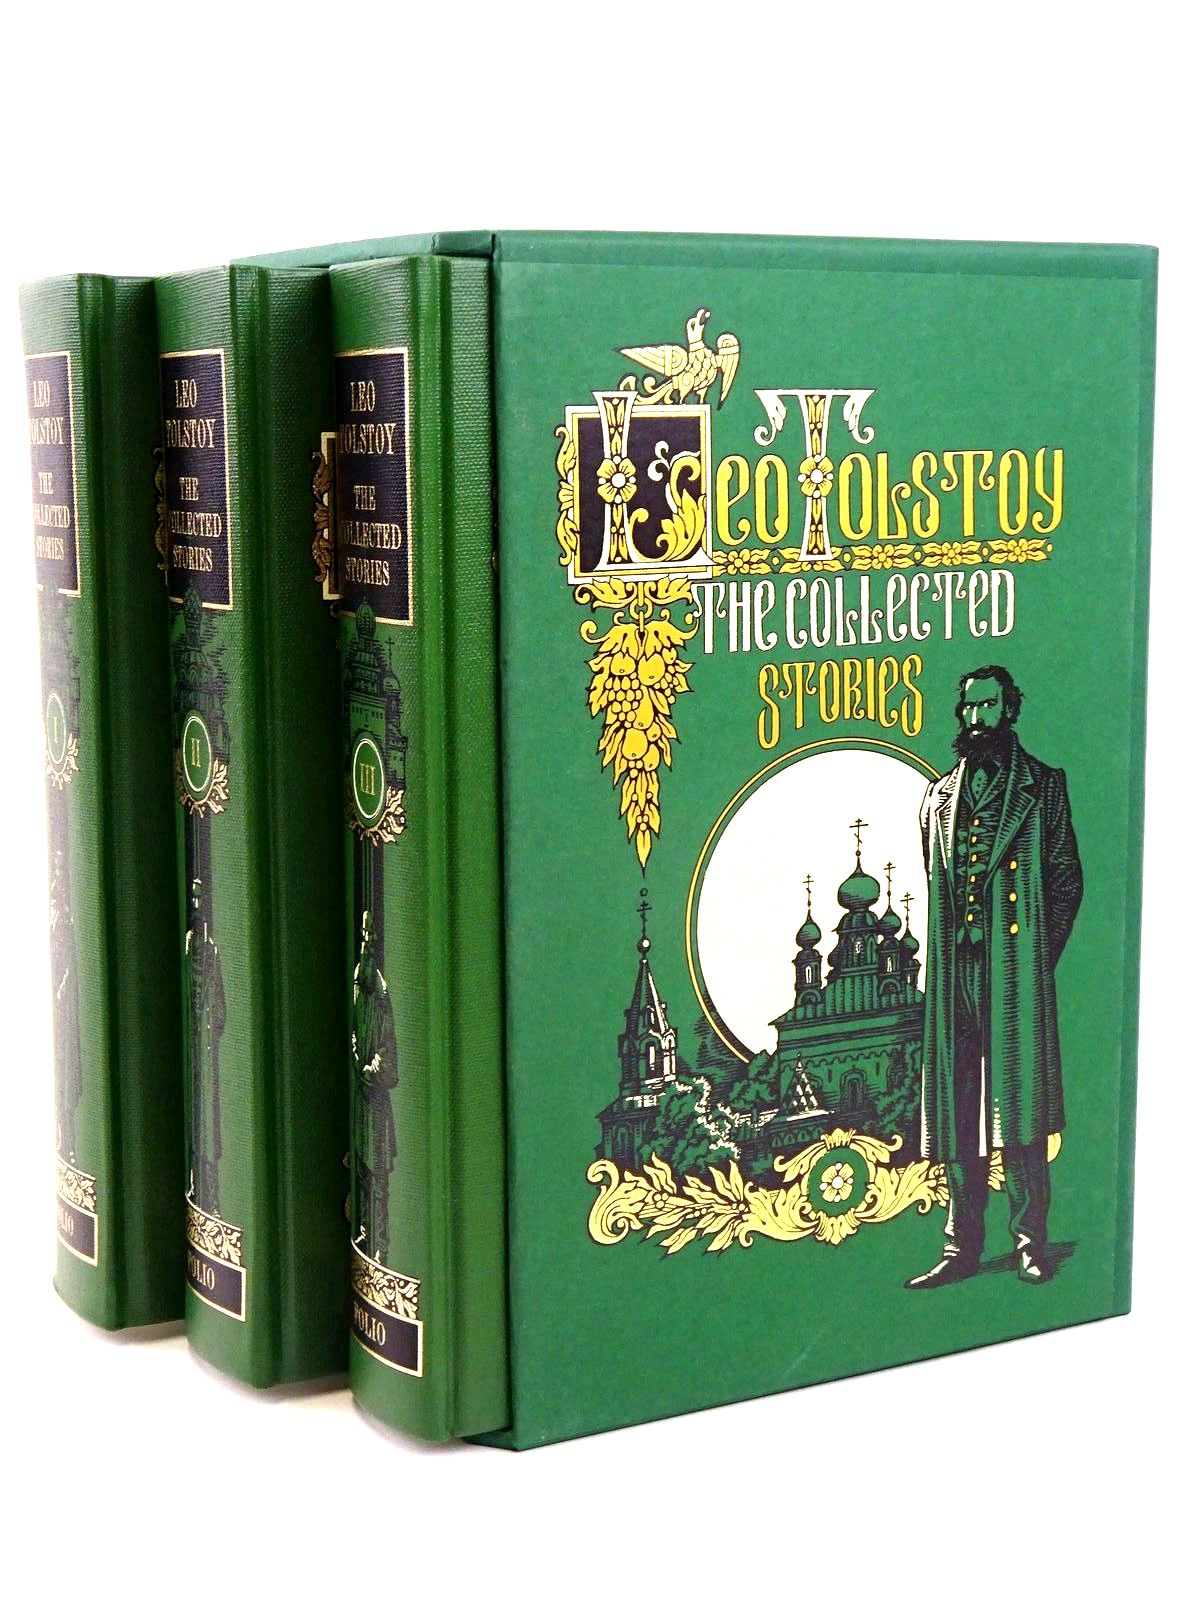 Photo of THE COLLECTED STORIES (3 VOLUMES) written by Tolstoy, Leo illustrated by Pisarev, Roman published by Folio Society (STOCK CODE: 1318305)  for sale by Stella & Rose's Books